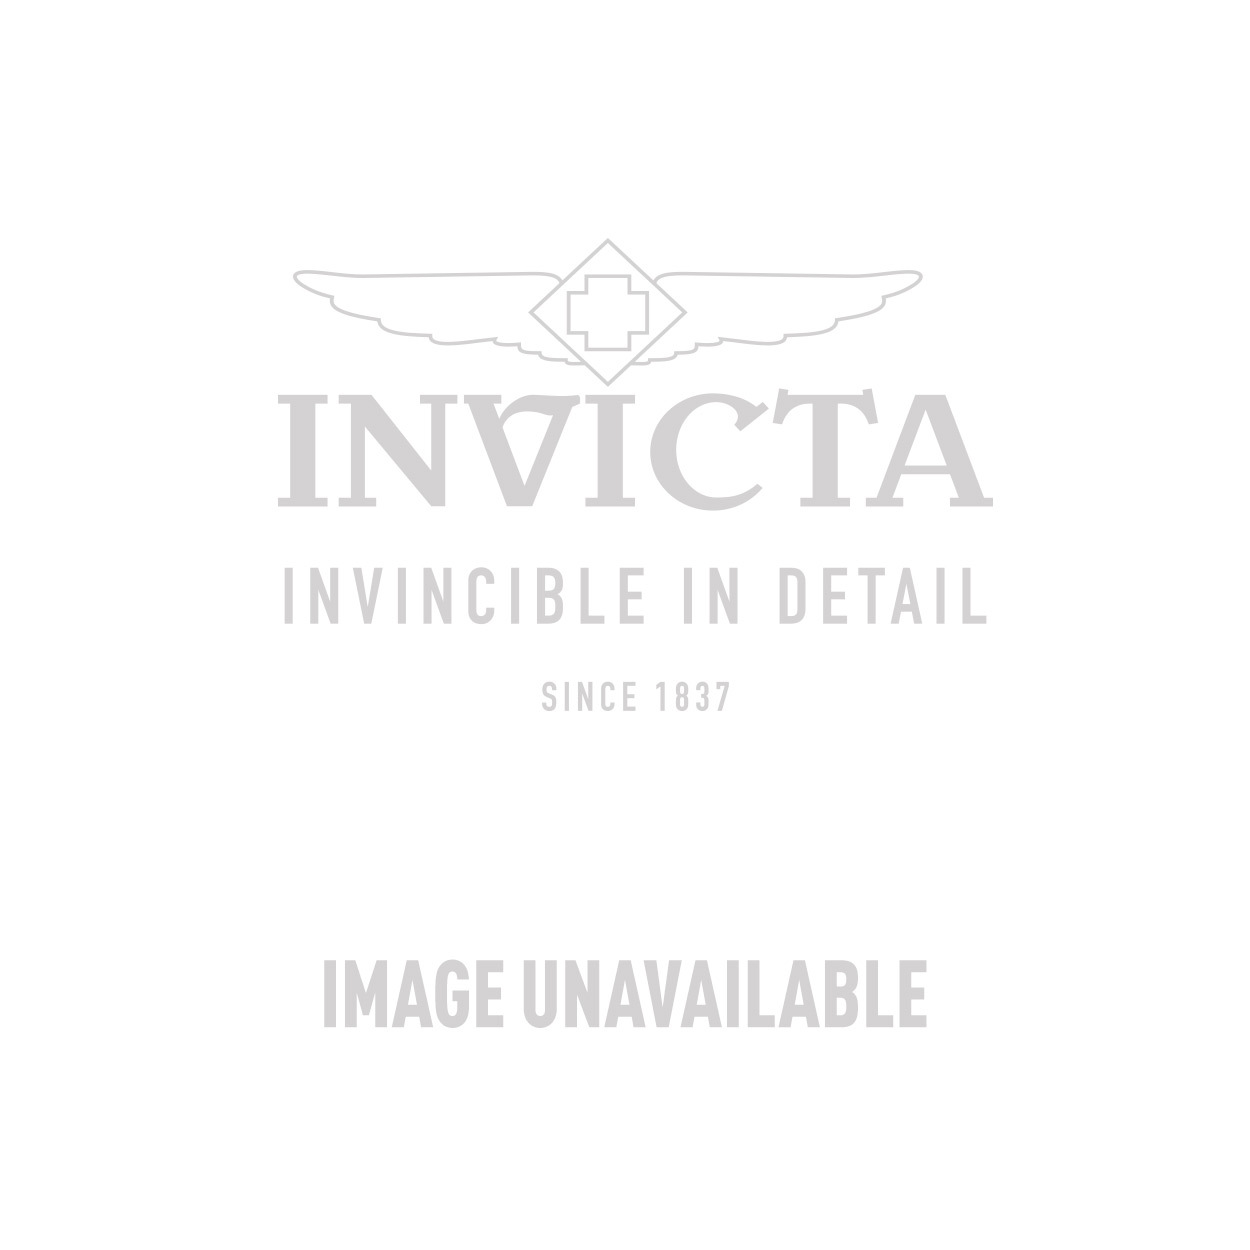 Invicta Specialty Swiss Movement Quartz Watch - Gold, Tungsten case with Gold tone Stainless Steel, Tungsten band - Model 18144